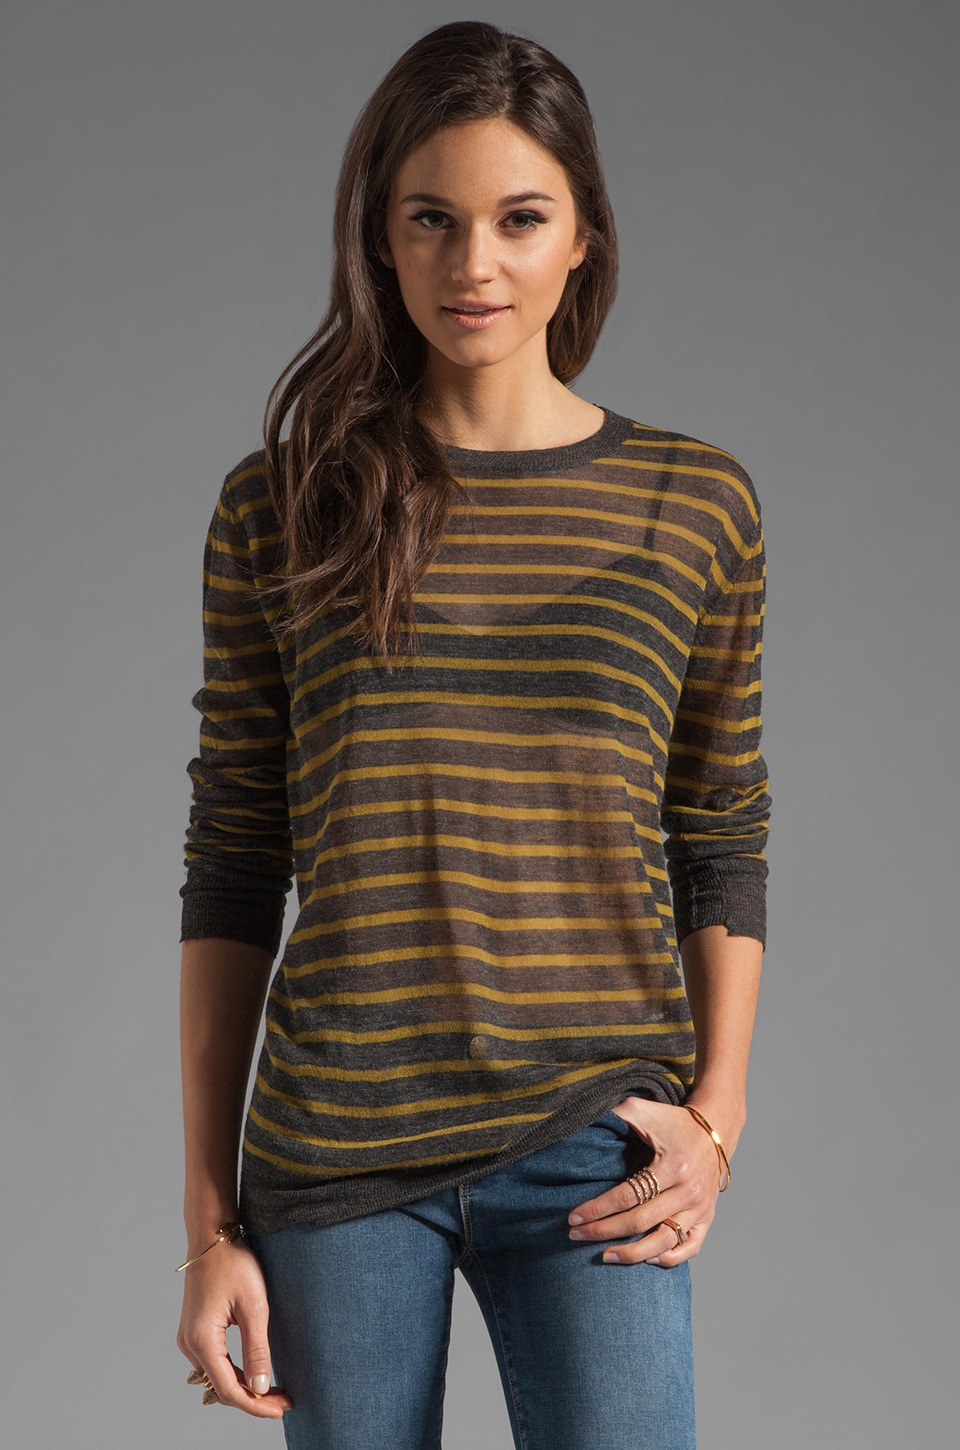 T by Alexander Wang Stripe Torquing Sweater in Charcoal and Chartreuse